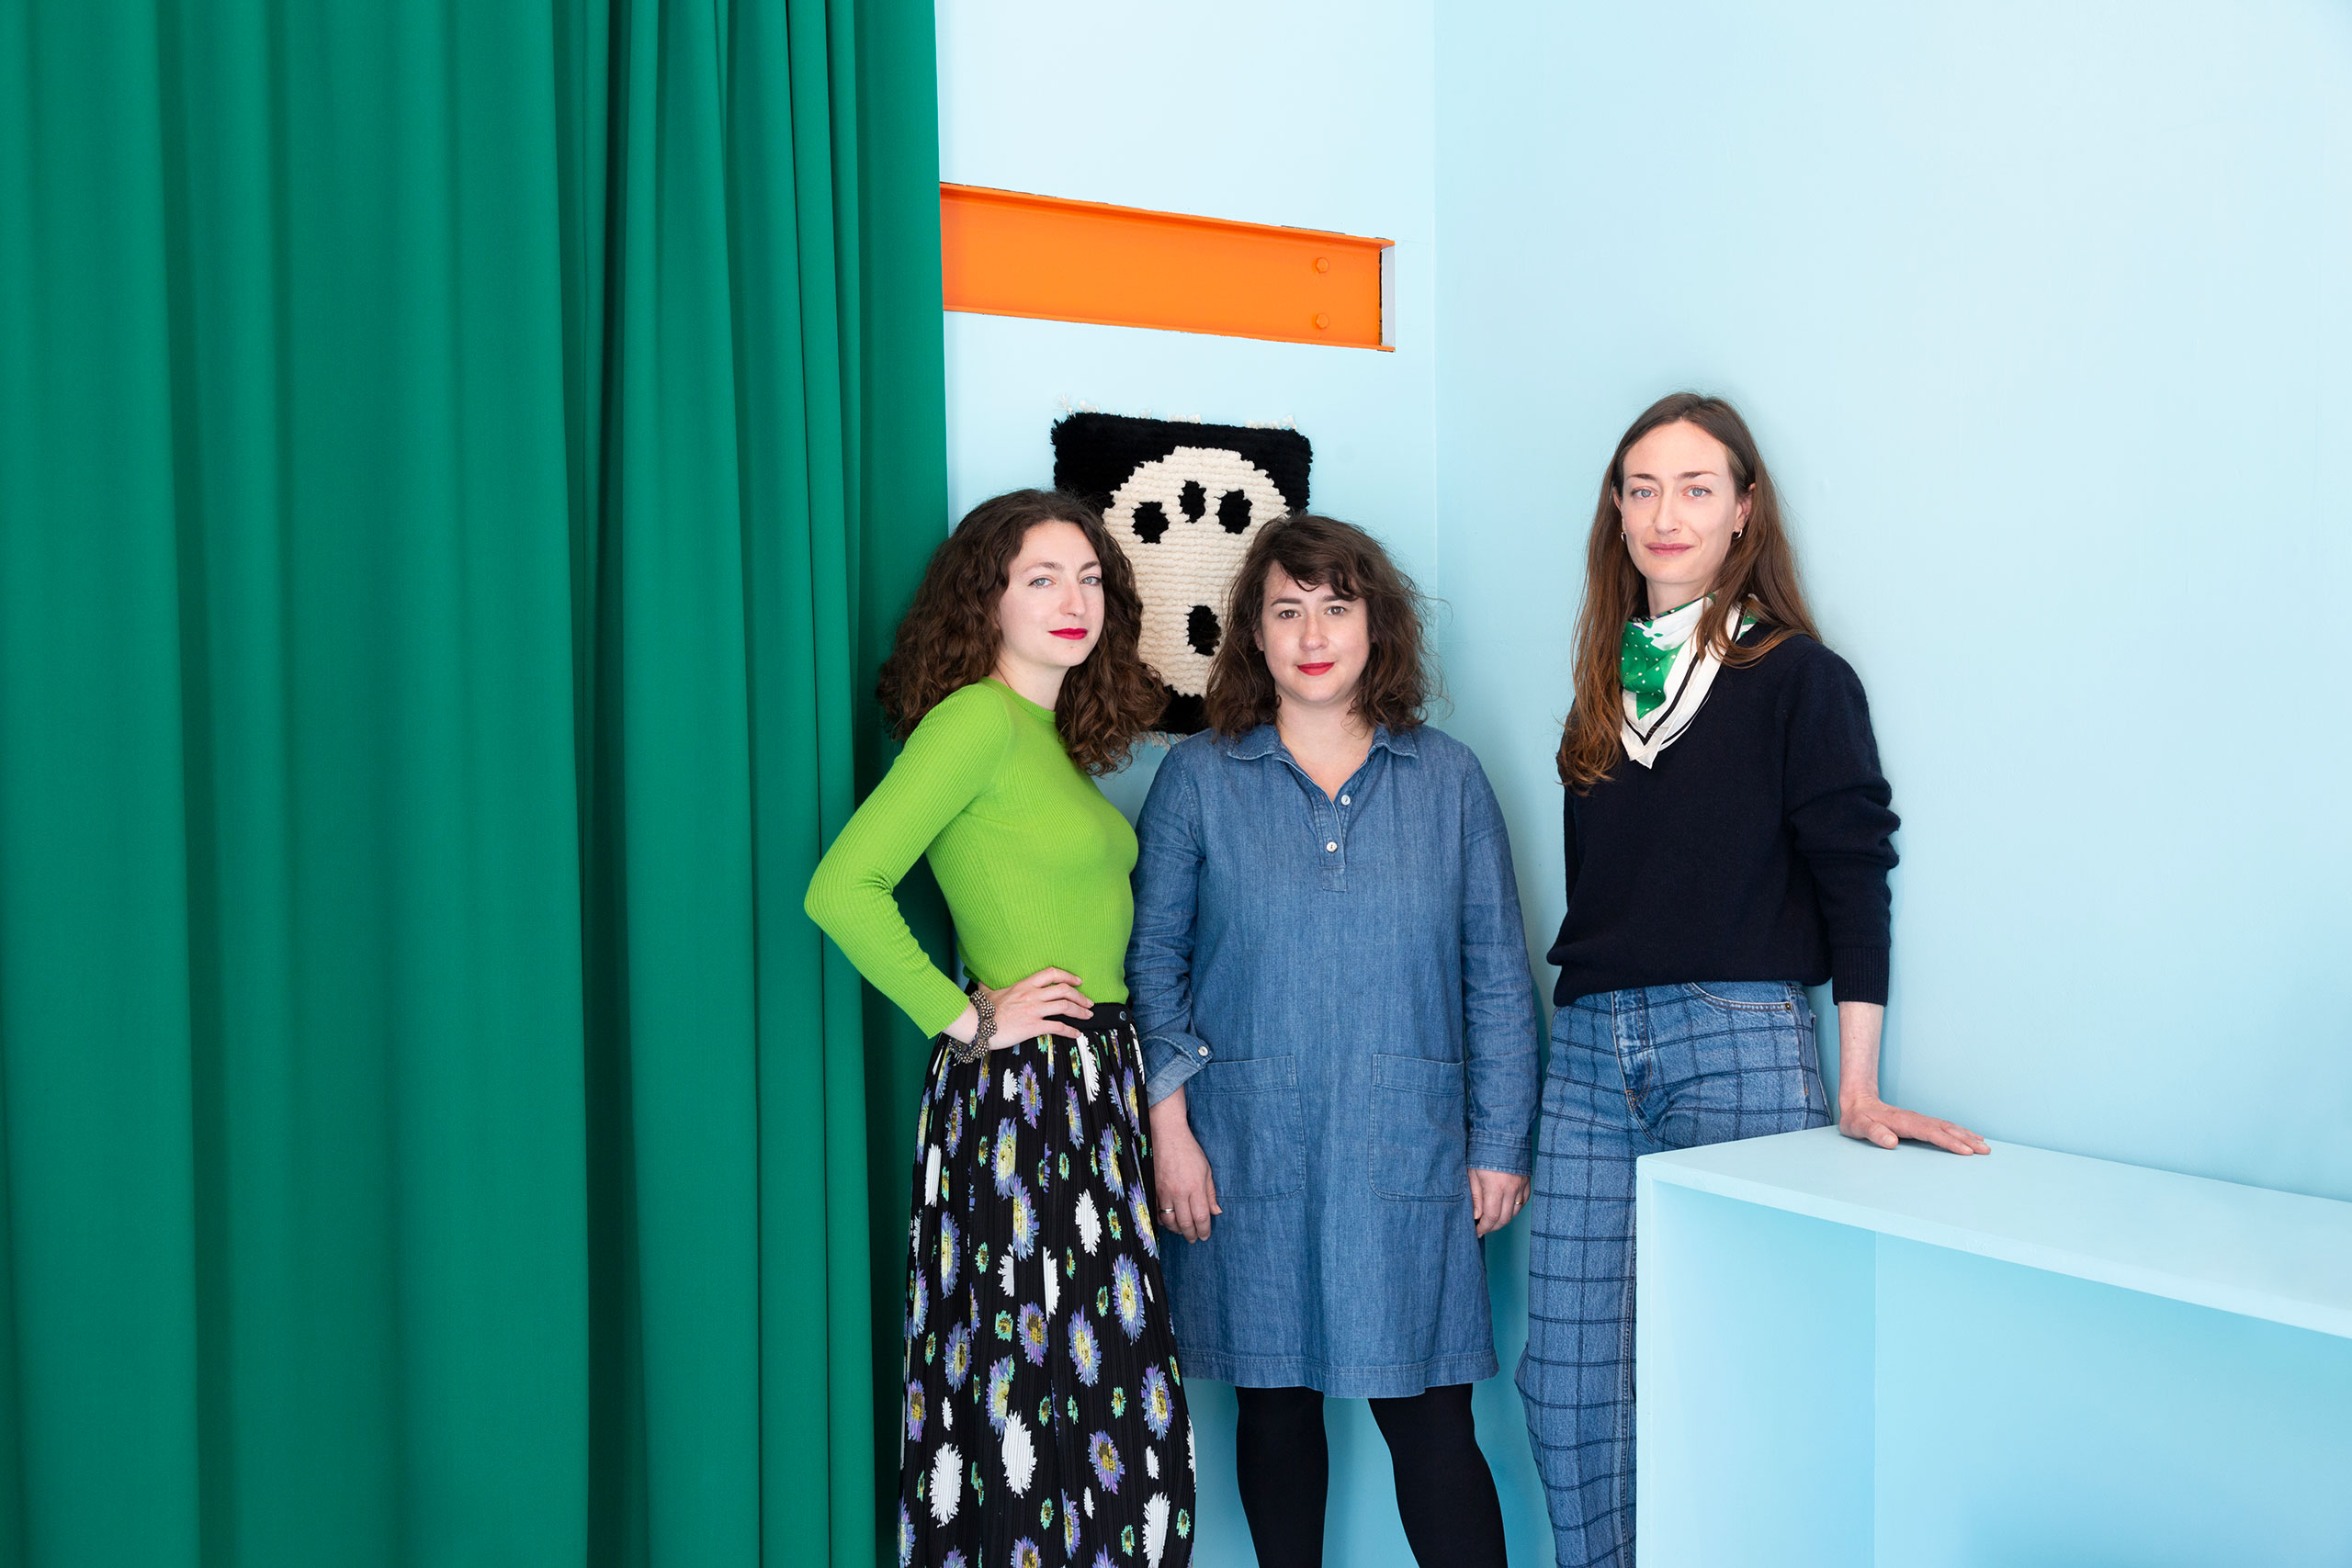 Portrait of WE DO NOT WORK ALONE founders, Louise Grislain, Anna Klossowski and Charlotte Morel.Photography © Émile Kirsch.